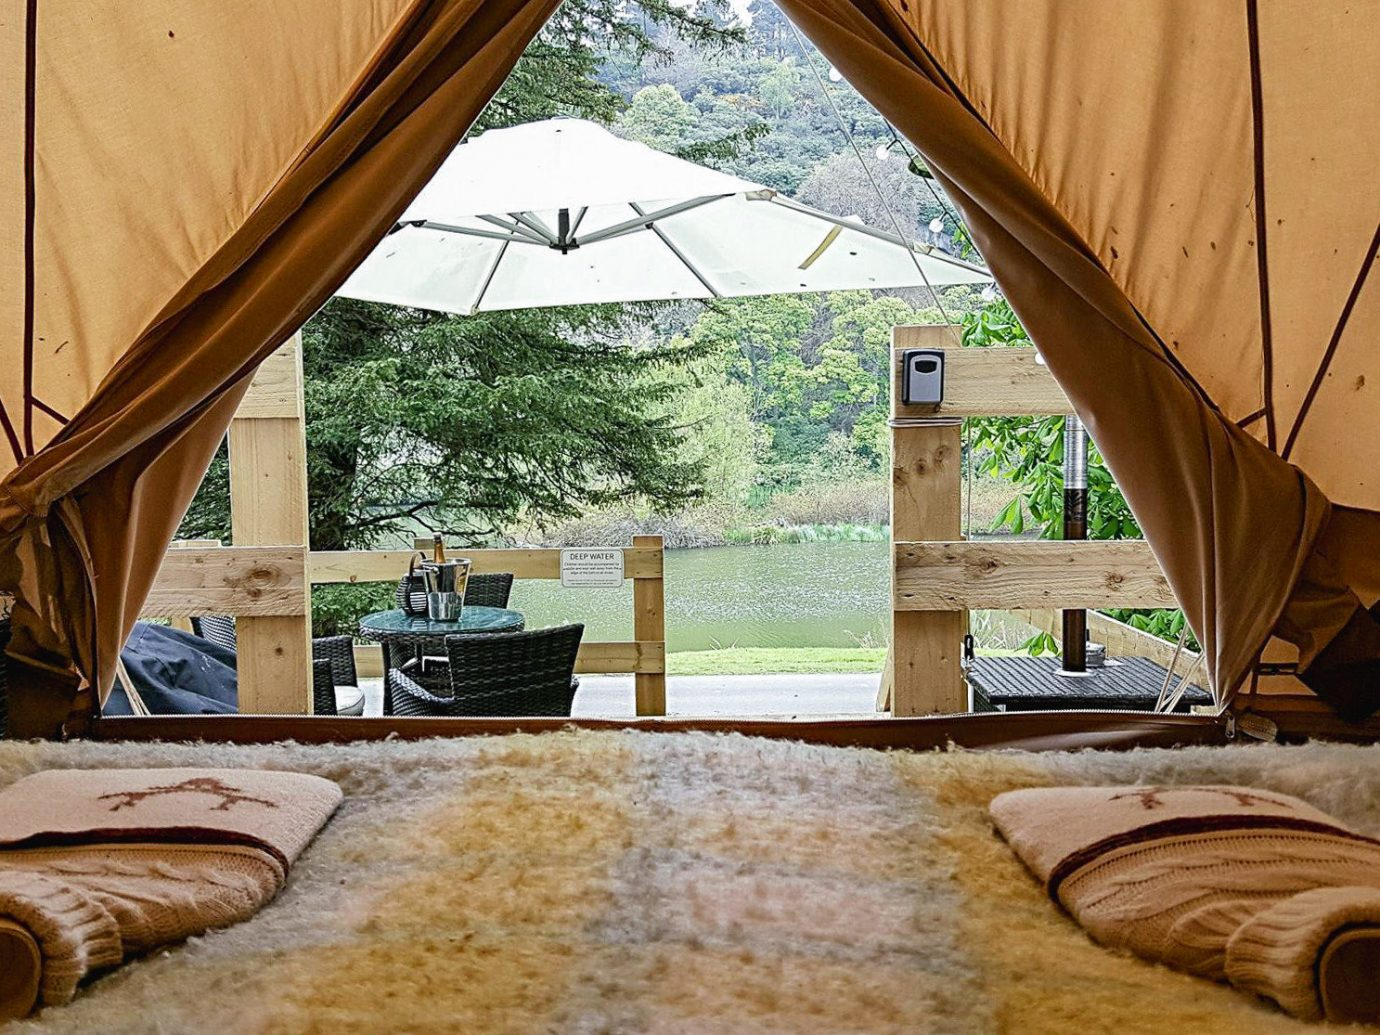 Glamping Outdoors + Adventure Trip Ideas property tent room wood home interior design window estate real estate house daylighting